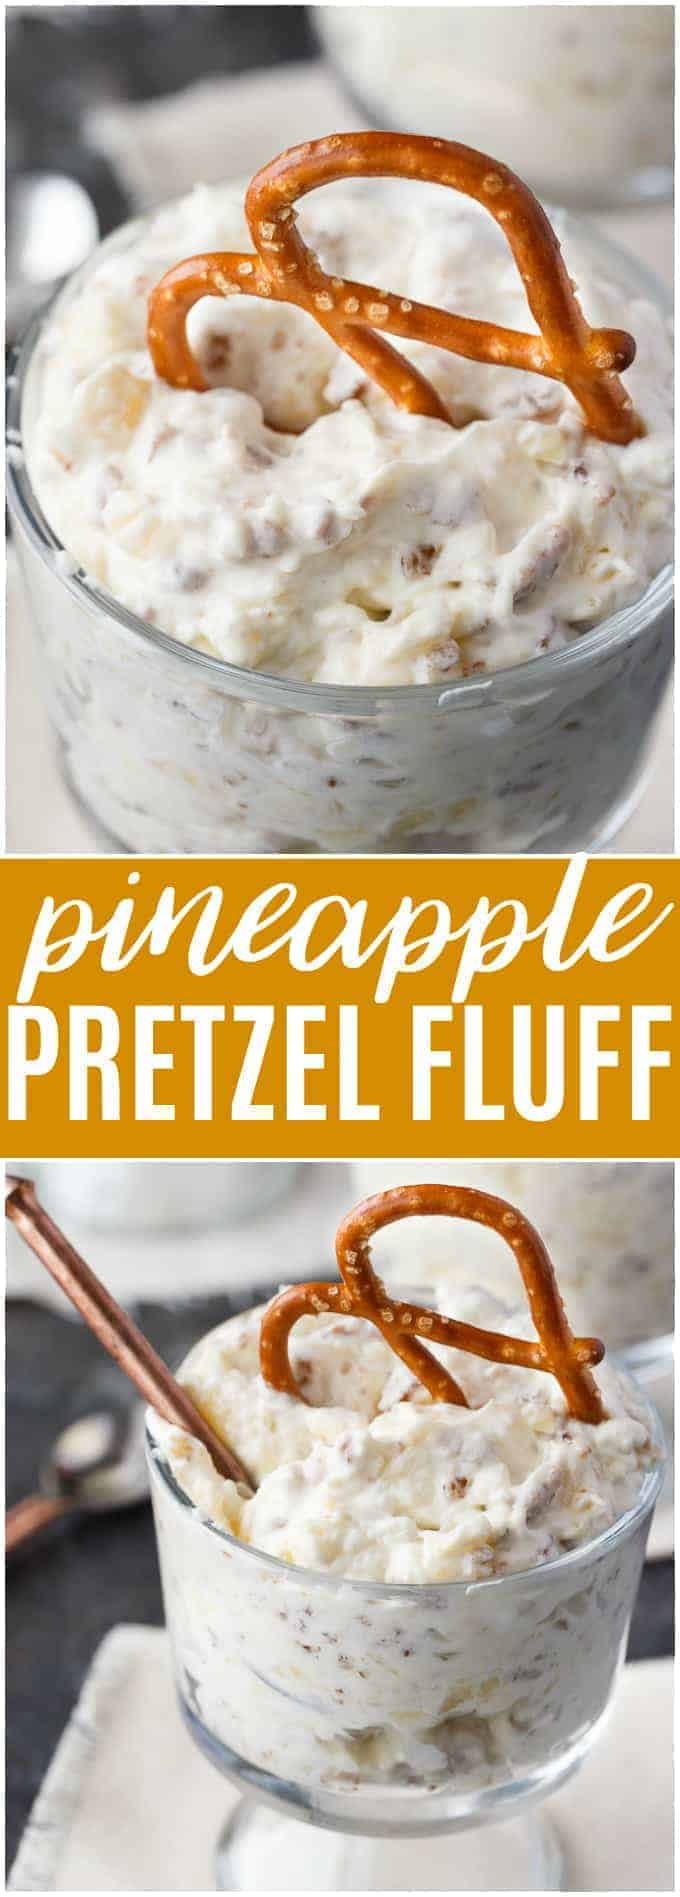 Pineapple Pretzel Fluff - A simple sweet and salty dessert! A creamy treat packed with a buttery, salted crunch.